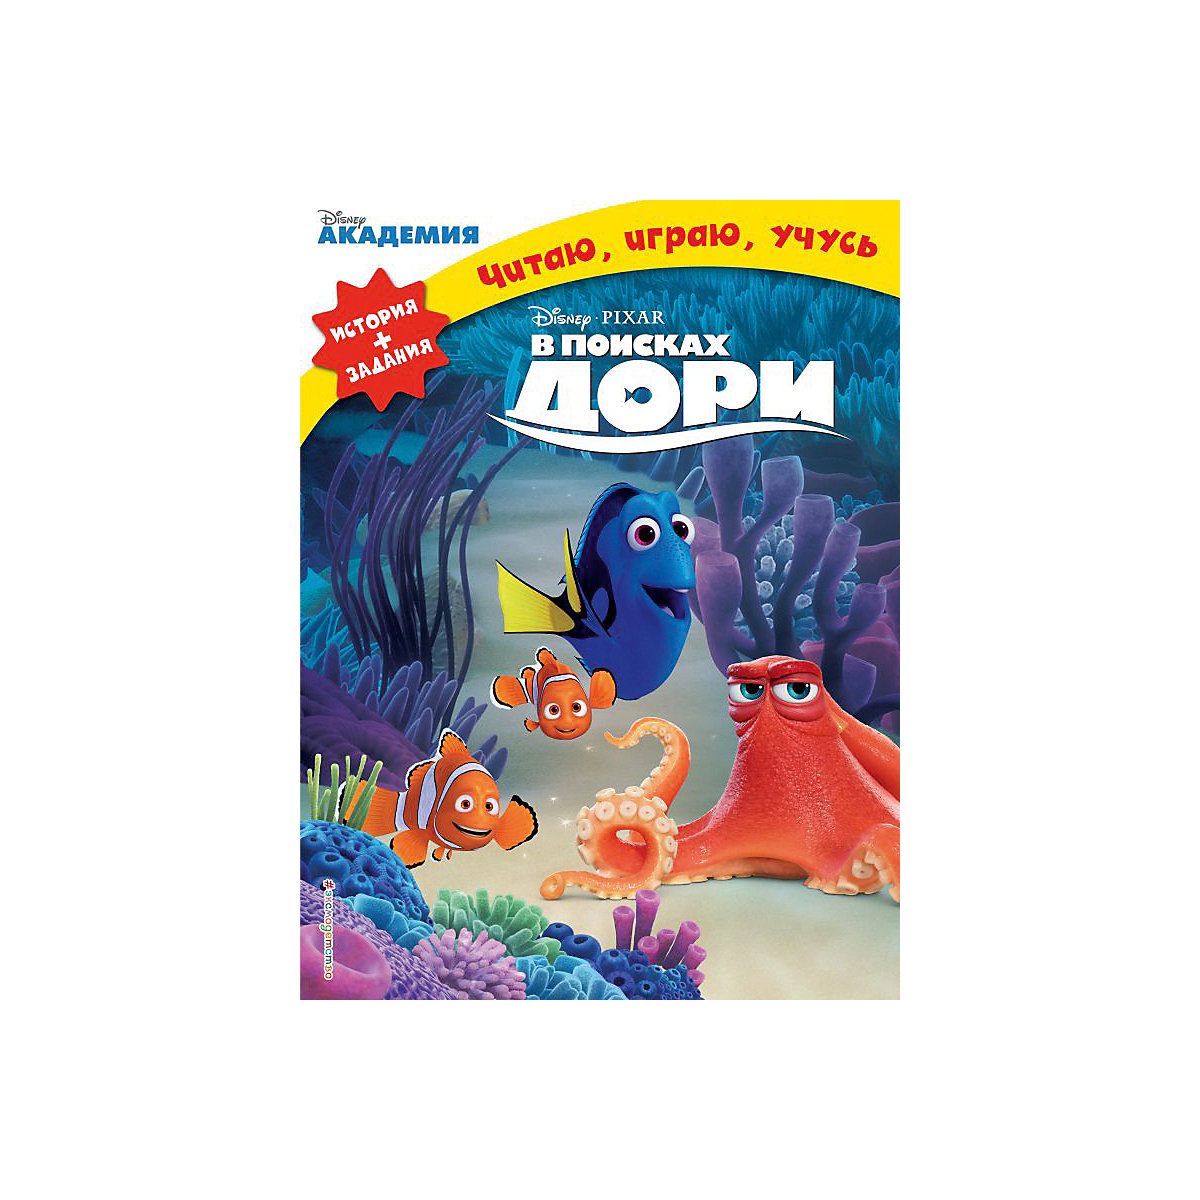 Books EKSMO 8495405 Children Education Encyclopedia Alphabet Dictionary Book For Baby MTpromo